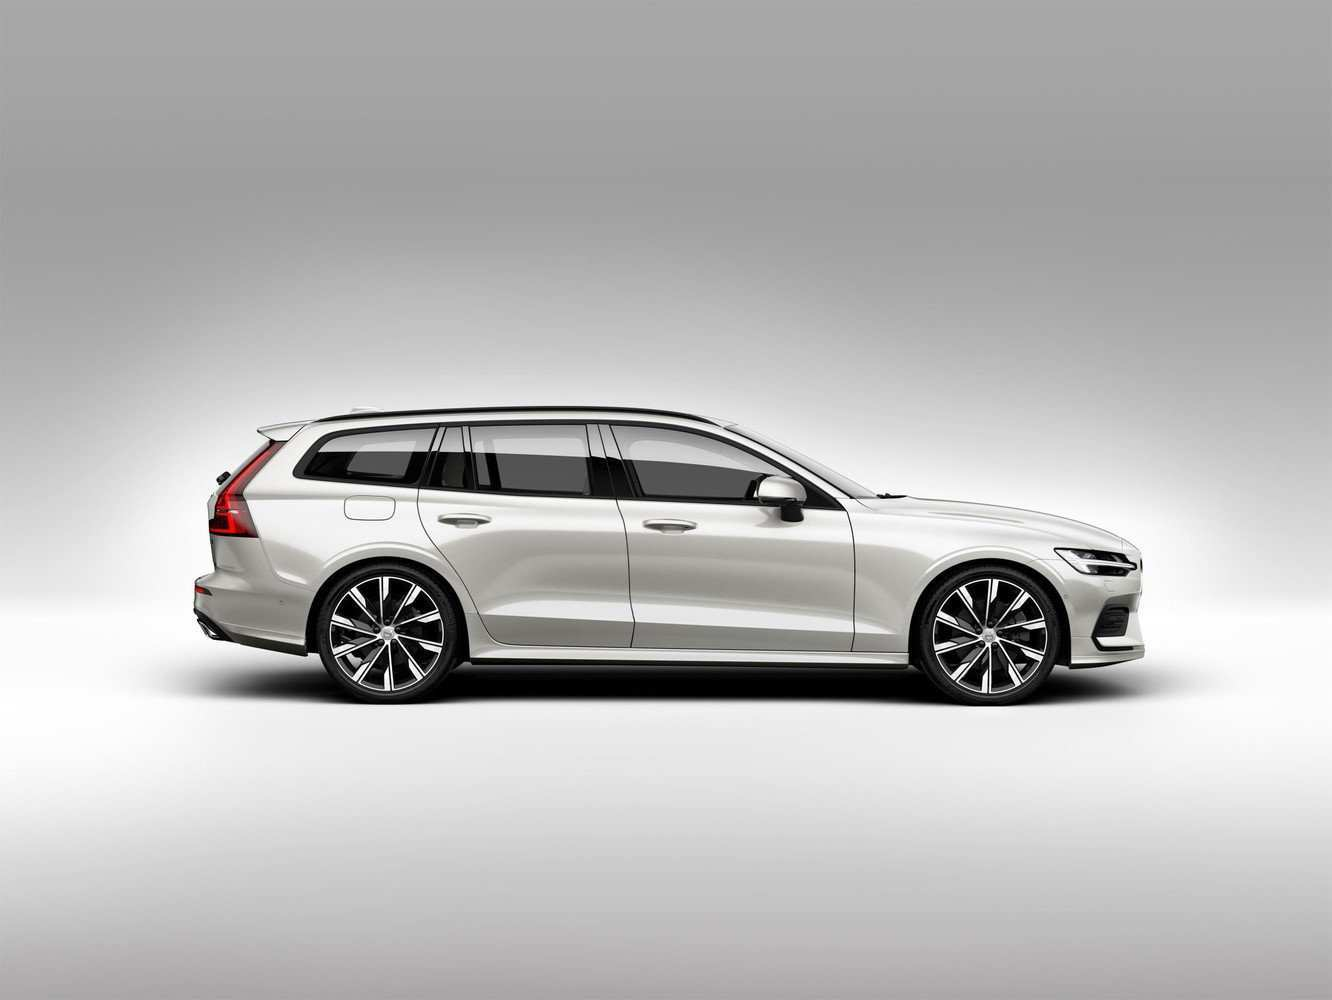 23 All New Volvo V60 2019 Wallpaper